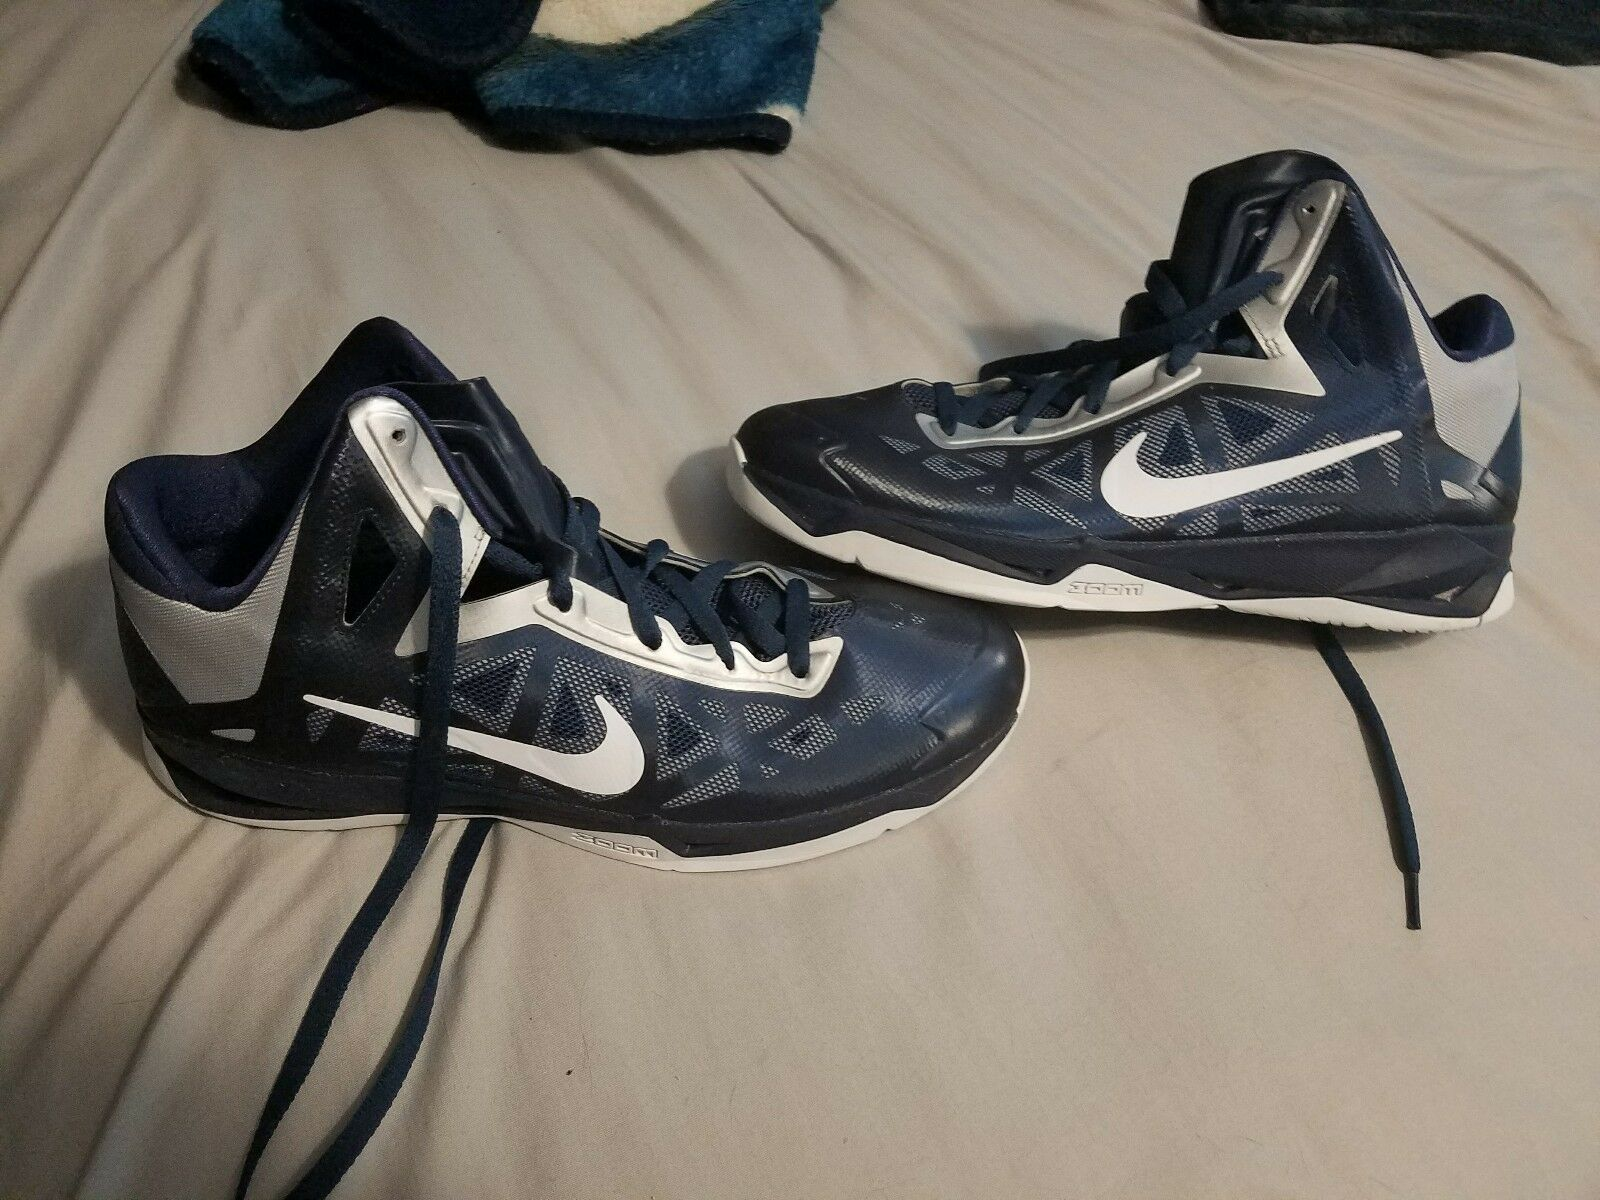 Nike zoom basketball shoes size 12 The latest discount shoes for men and women